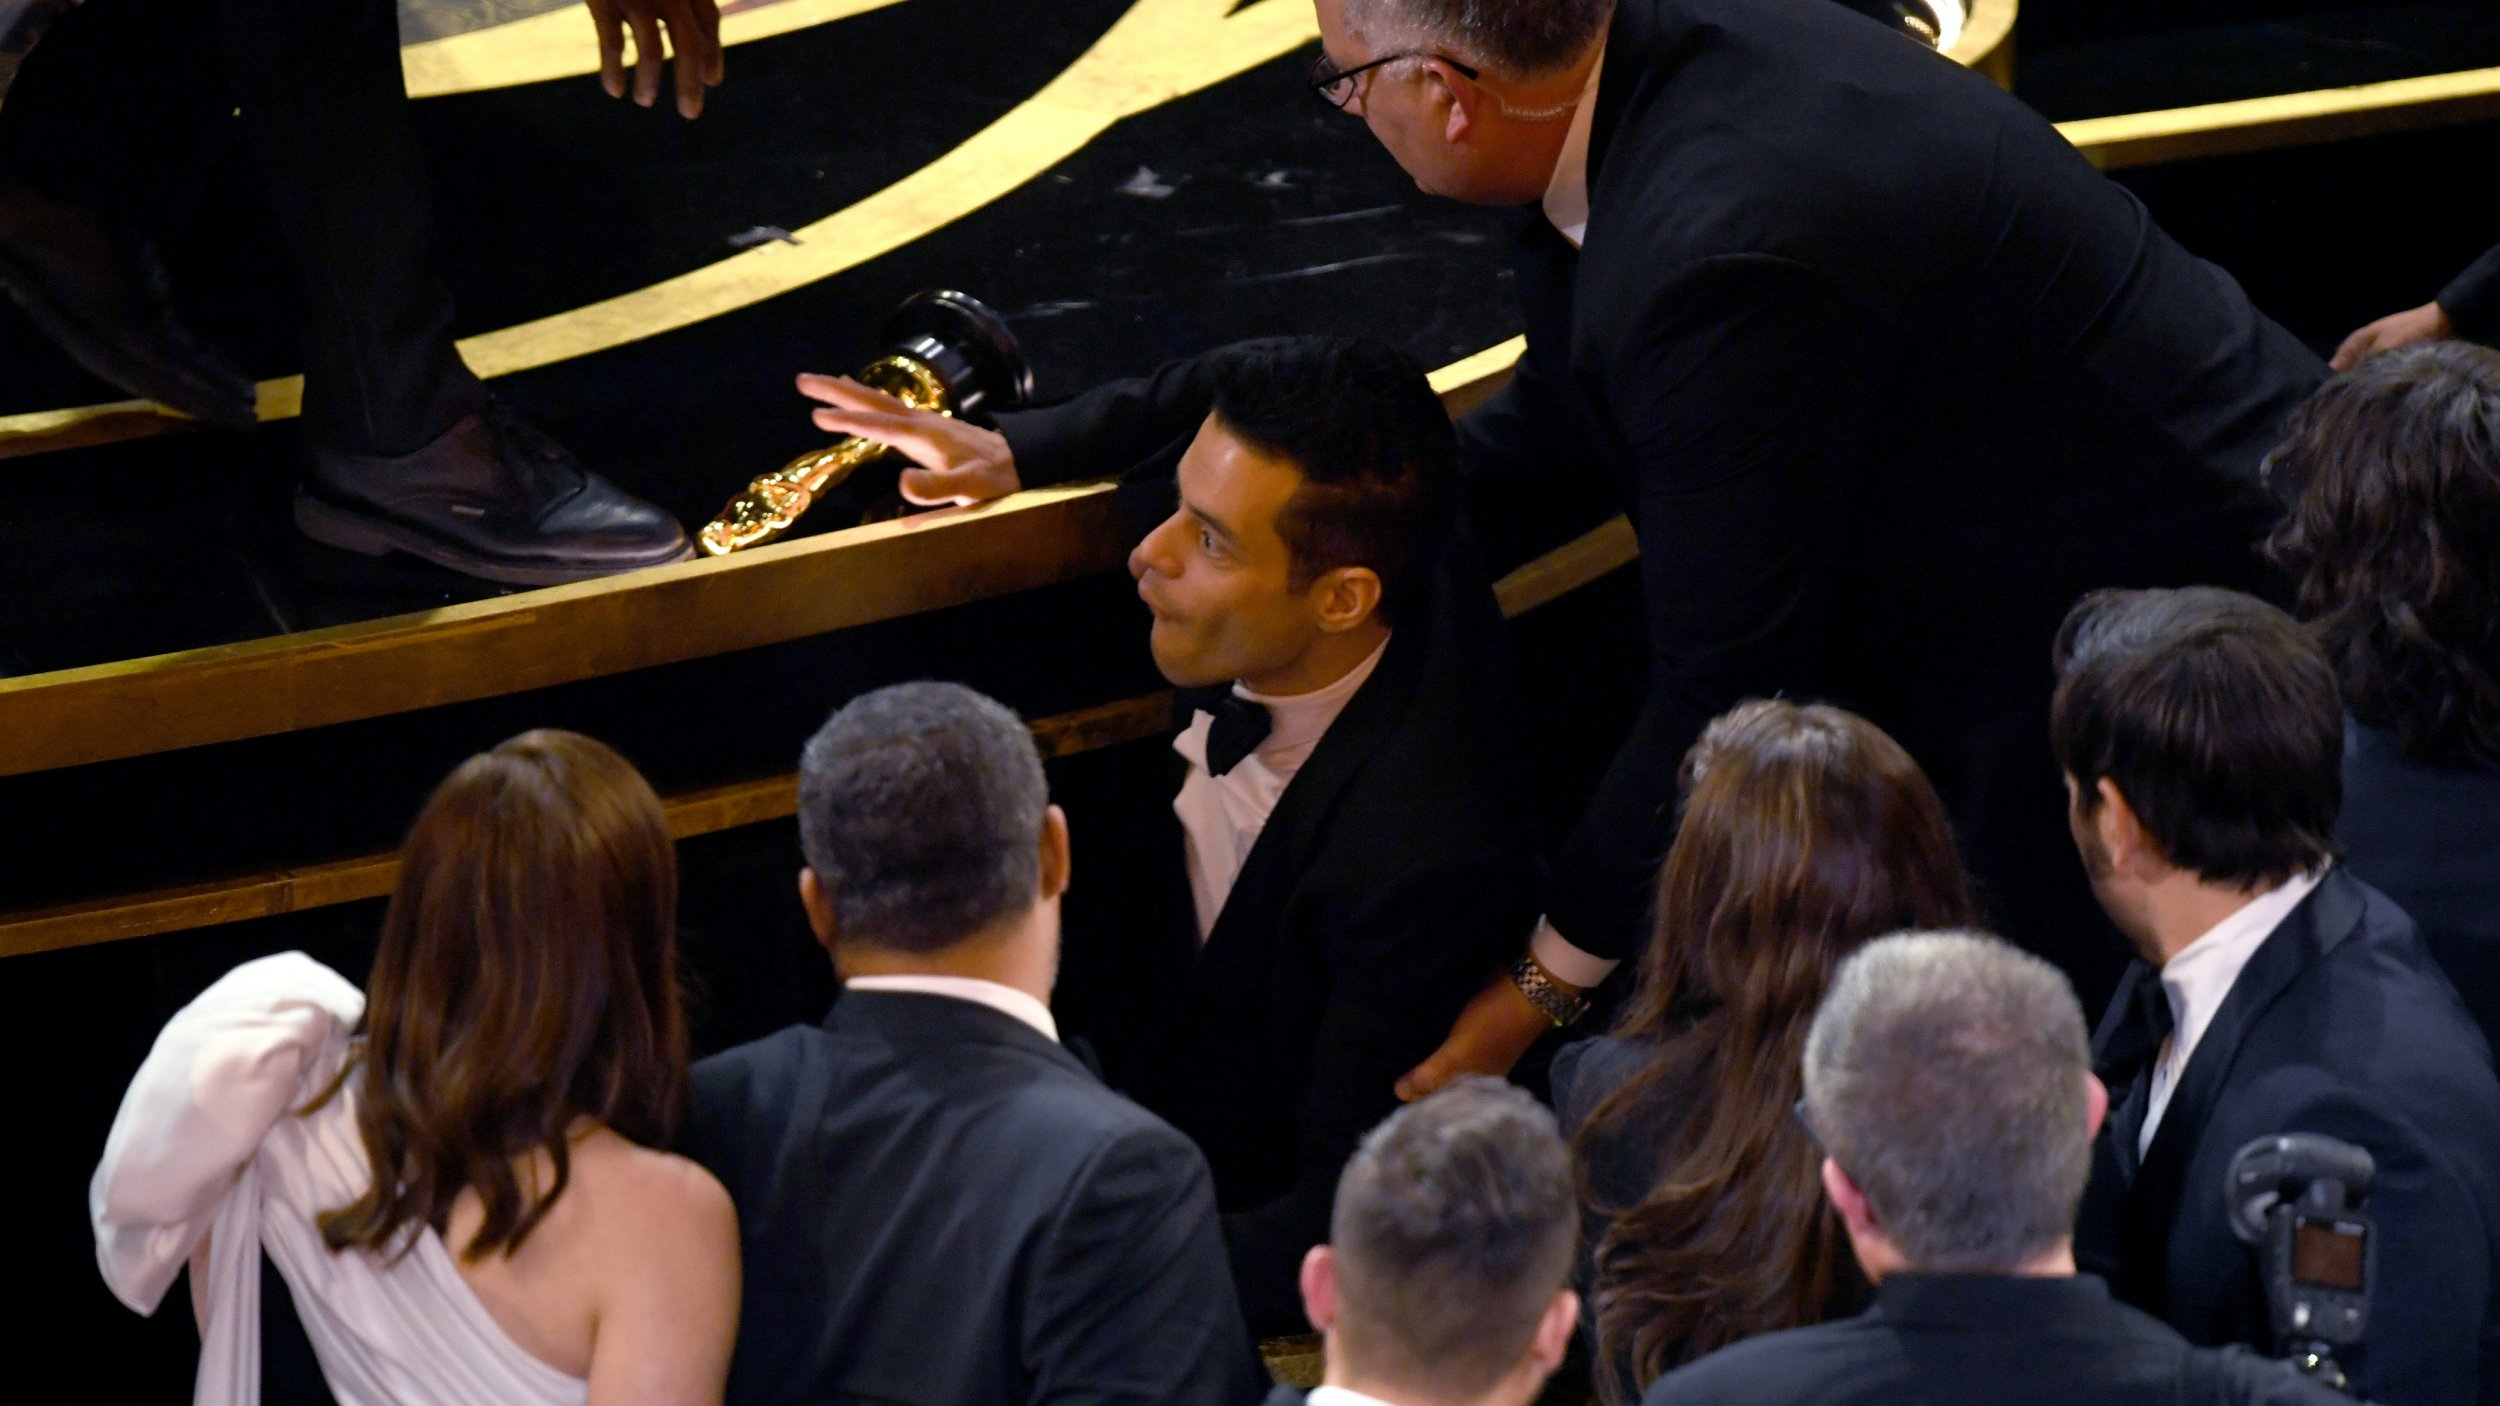 Rami Malek falls off stage and treated by paramedics after winning first Oscar